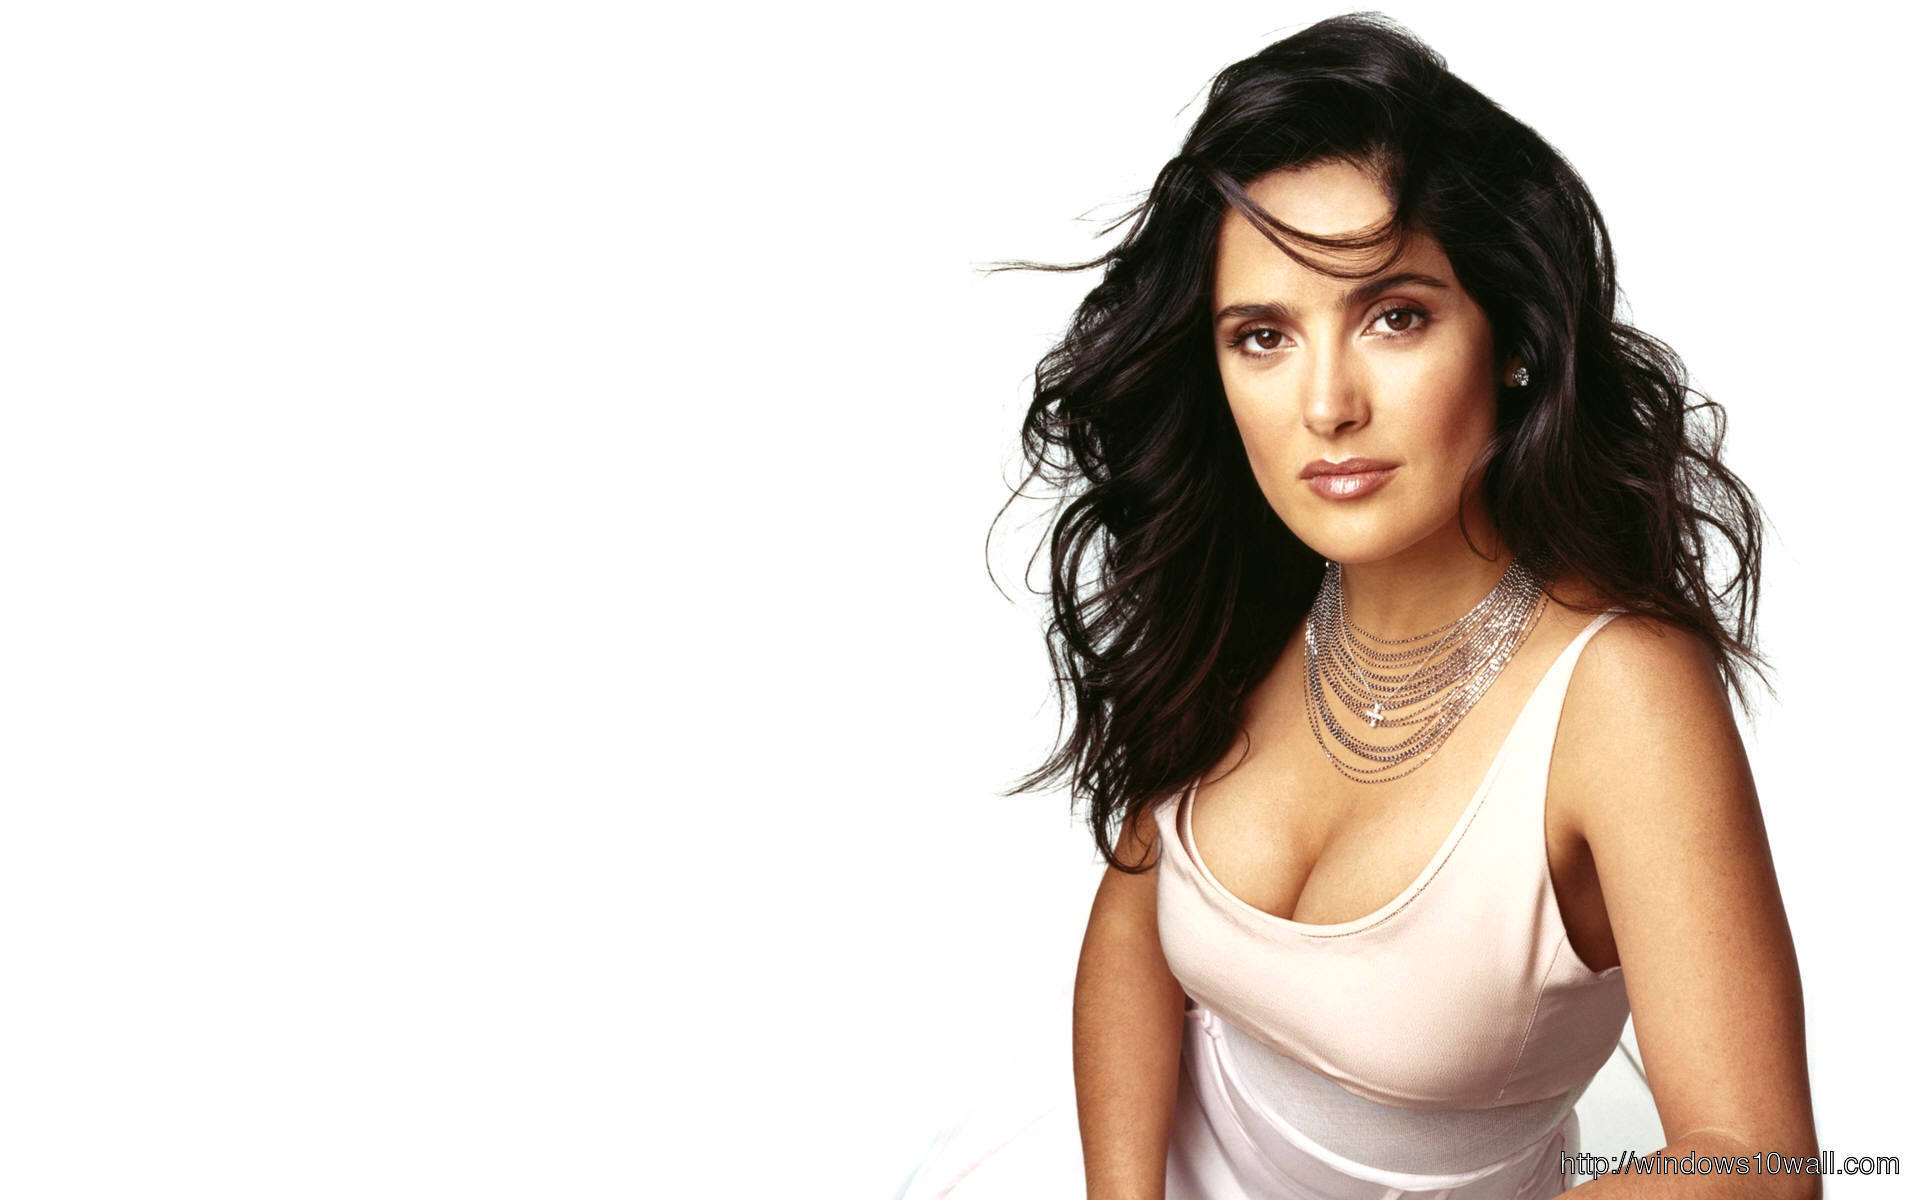 Cute Love Quotes Mobile Wallpapers Salma Hayek Sexy Wallpaper Windows 10 Wallpapers